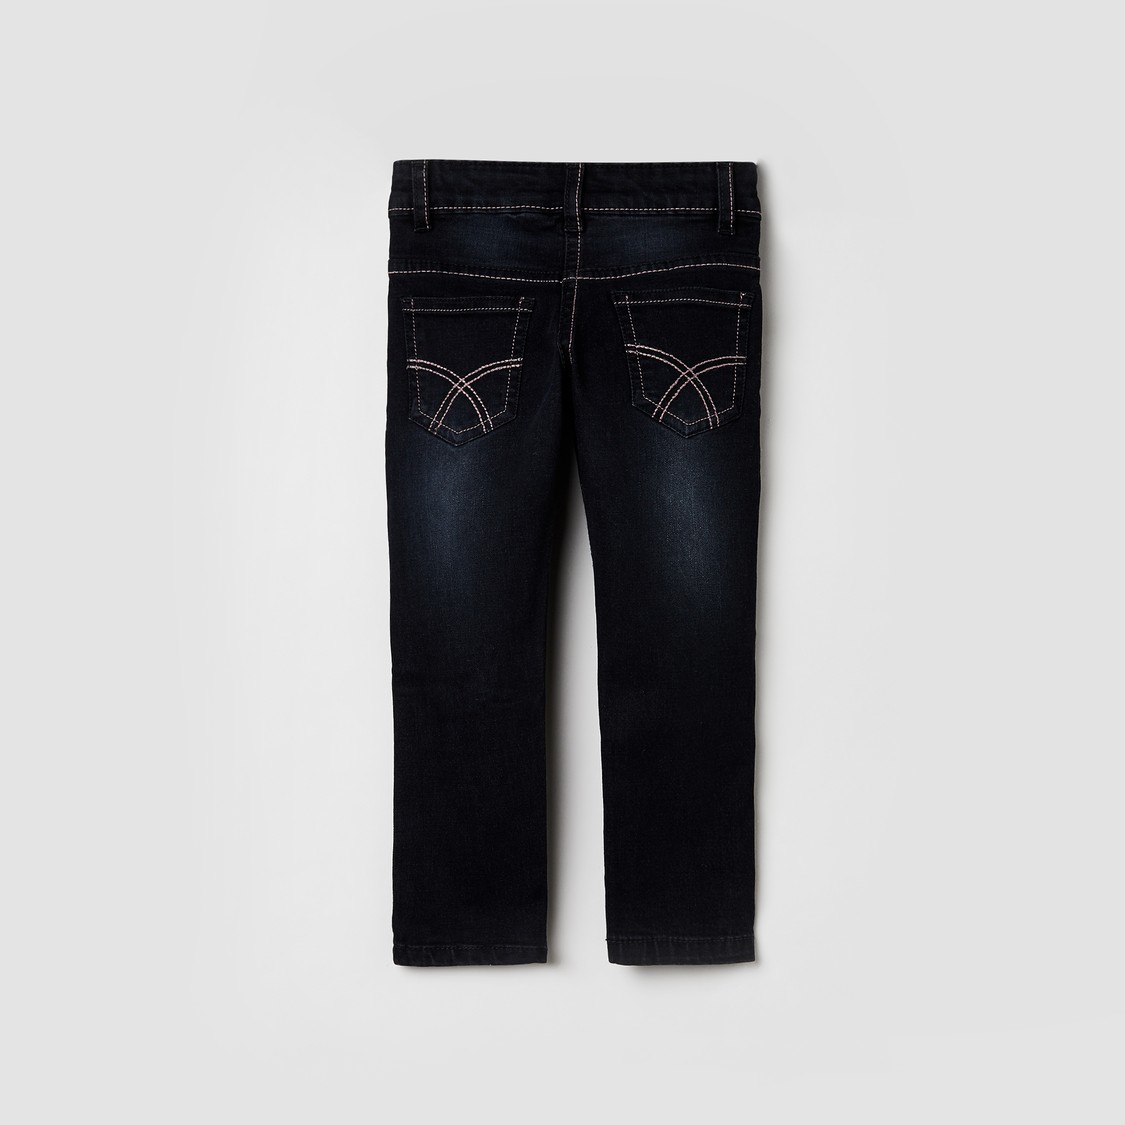 MAX Solid Jeans with Floral Embroidery